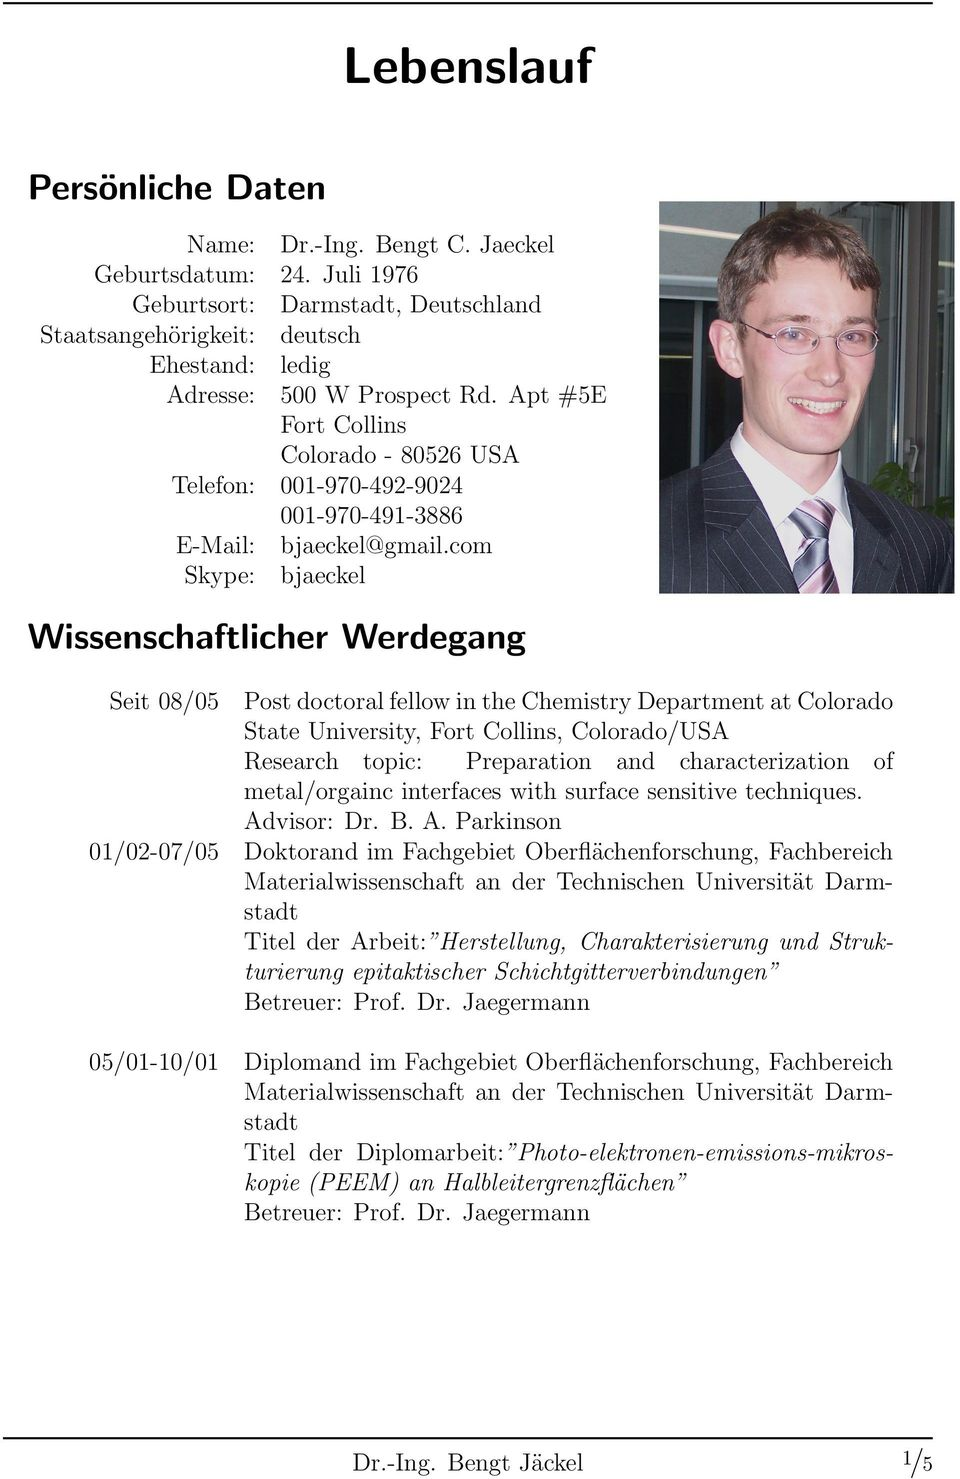 Lebenslauf Persönliche Daten Wissenschaftlicher. Sample Letter Of Resignation Letter For Personal Reasons. Resume Template Word With Photo. Cover Letter Eu Project Manager. Cover Letter For General Use. Short Cover Letter Sample Pdf. Letter Of Application Nigeria. Sample Excuse Letter For Being Absent In School Due To Family Gathering. Resume Job Skills For Cashier